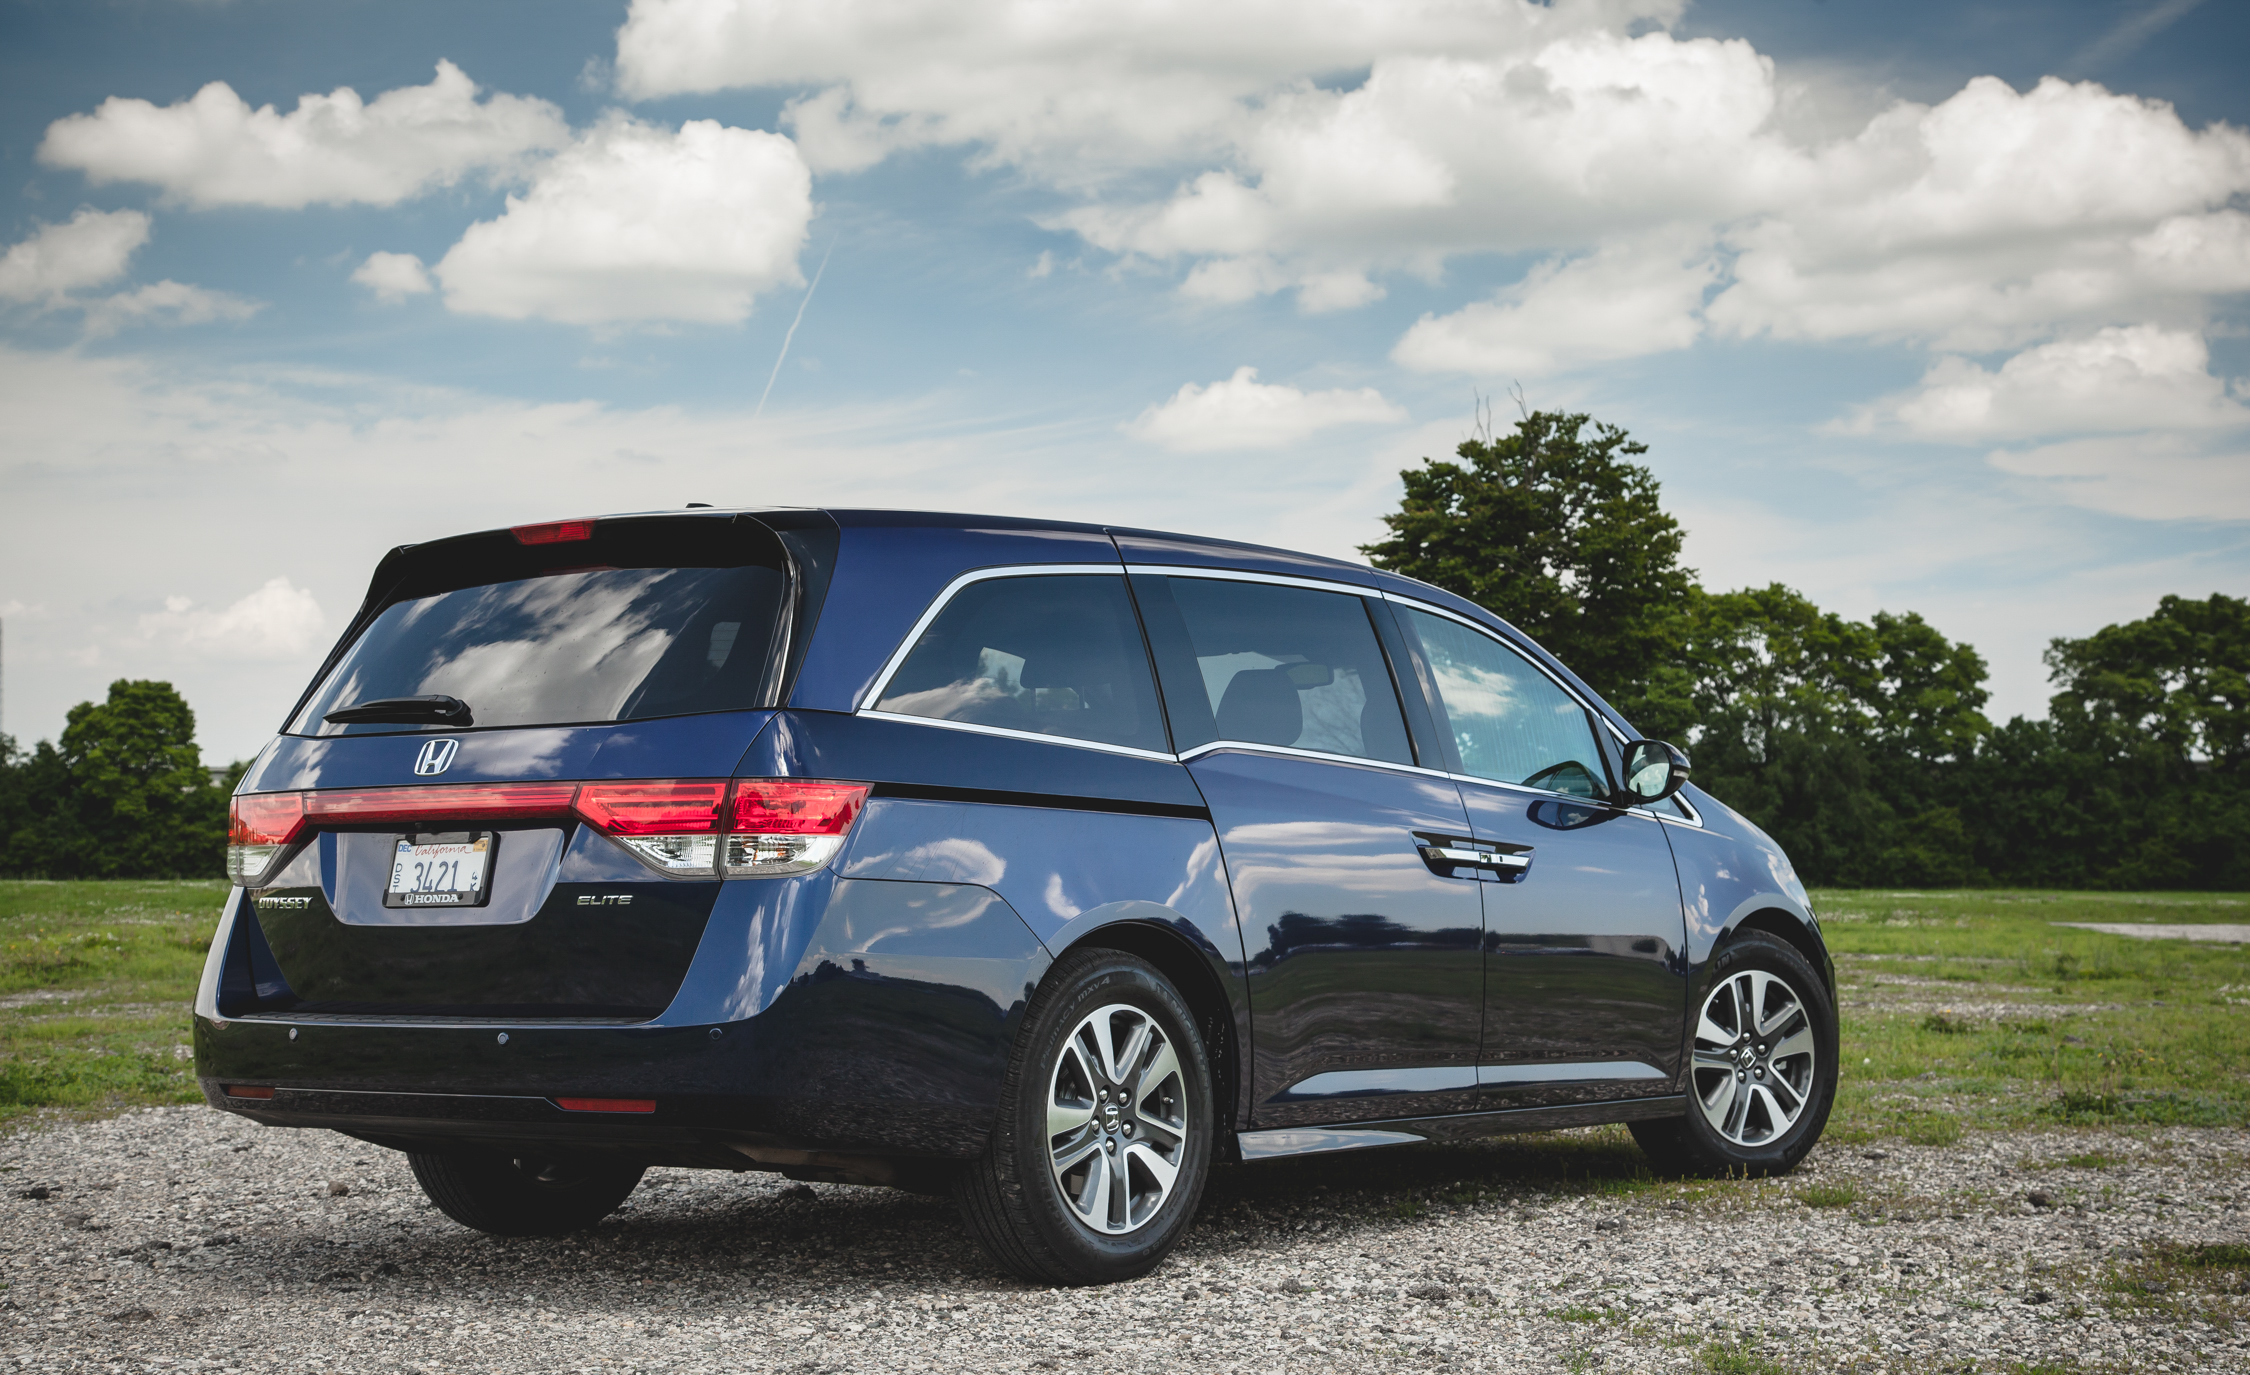 2014 honda odyssey cars exclusive videos and photos updates for Honda odyssey pilot